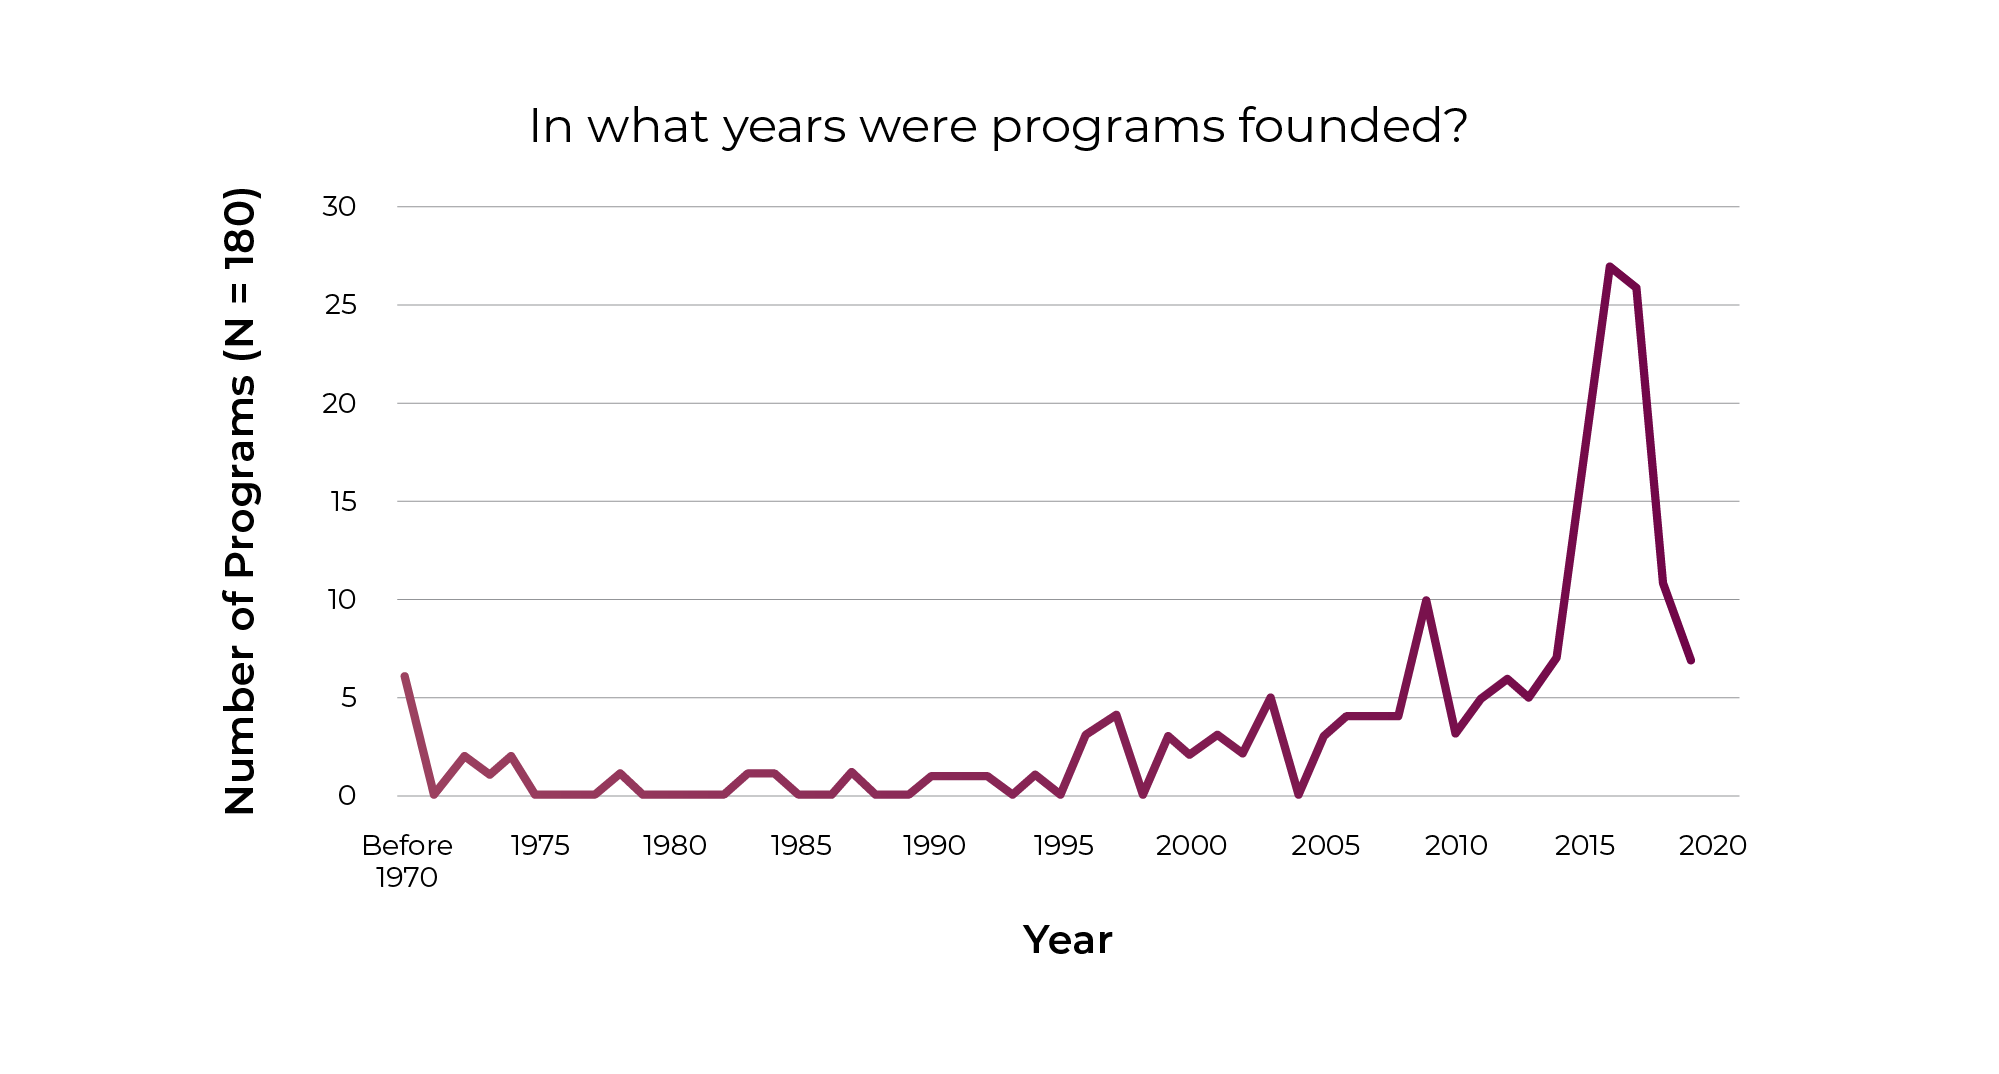 A line graph showing the years programs were founded